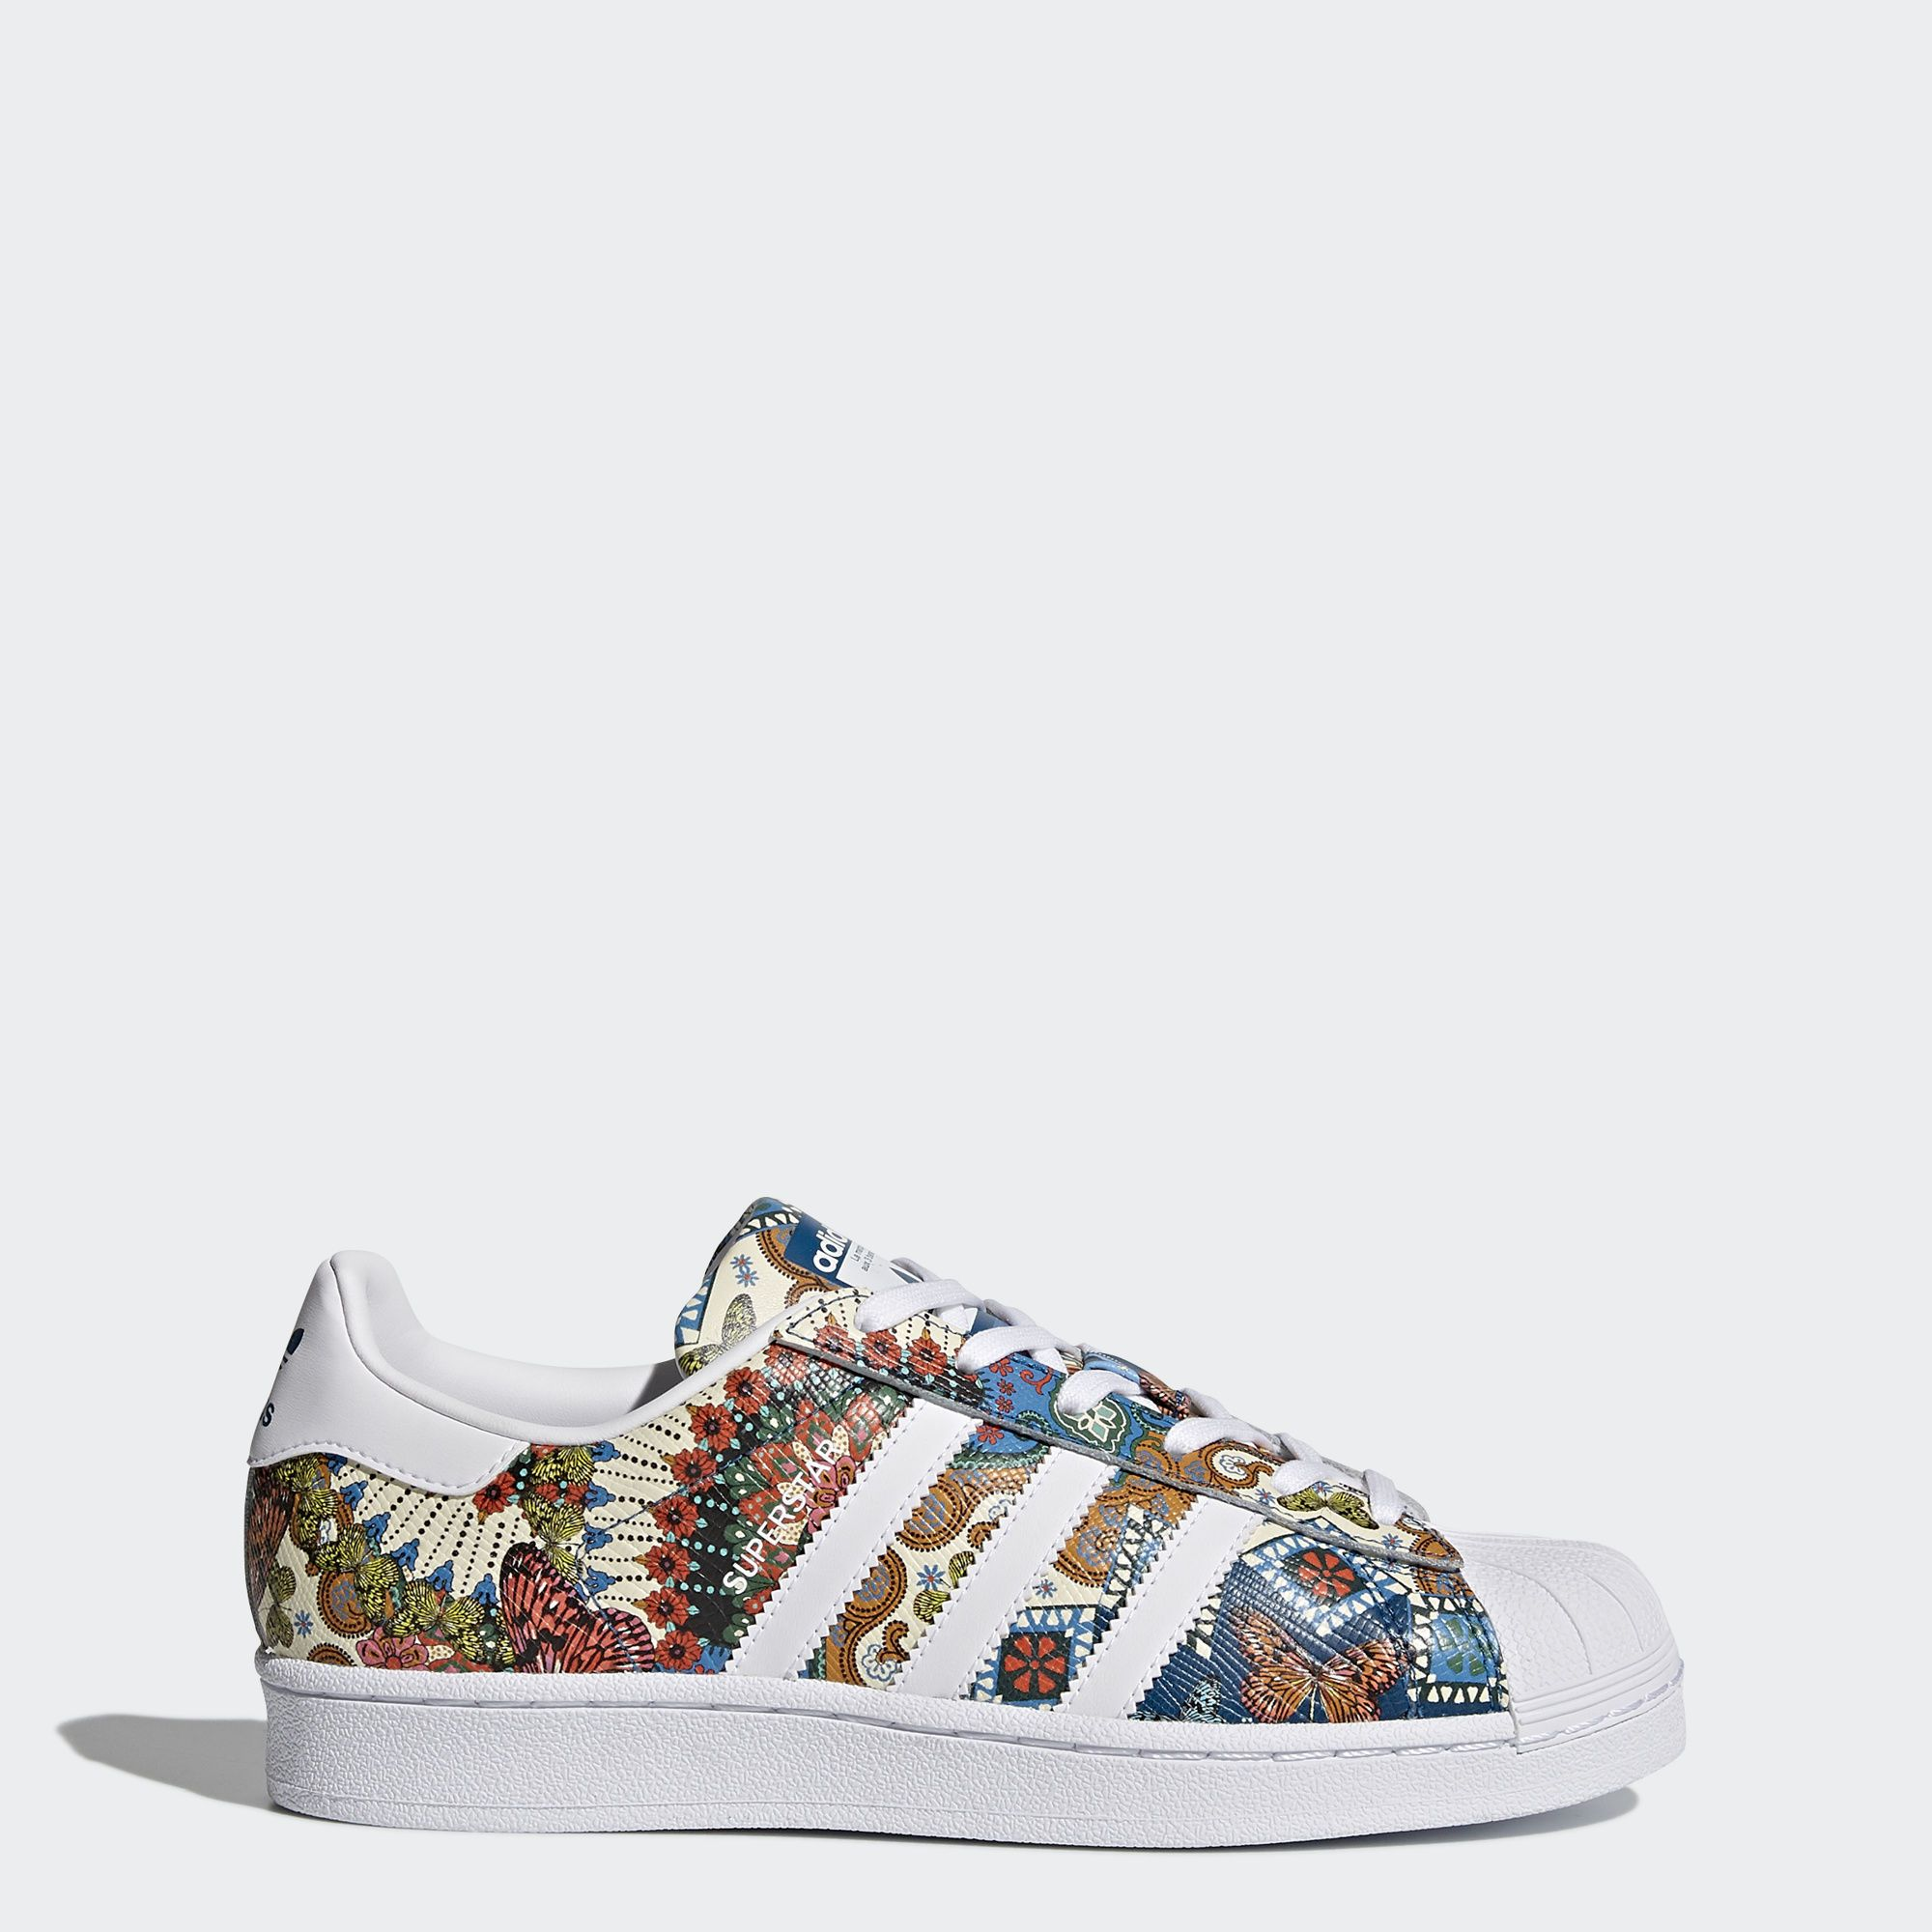 e6e2cba911 The adidas Superstar shoe travels to the tropics. These women's shoes get  revamped with a print designed with Brazil's The FARM Company.